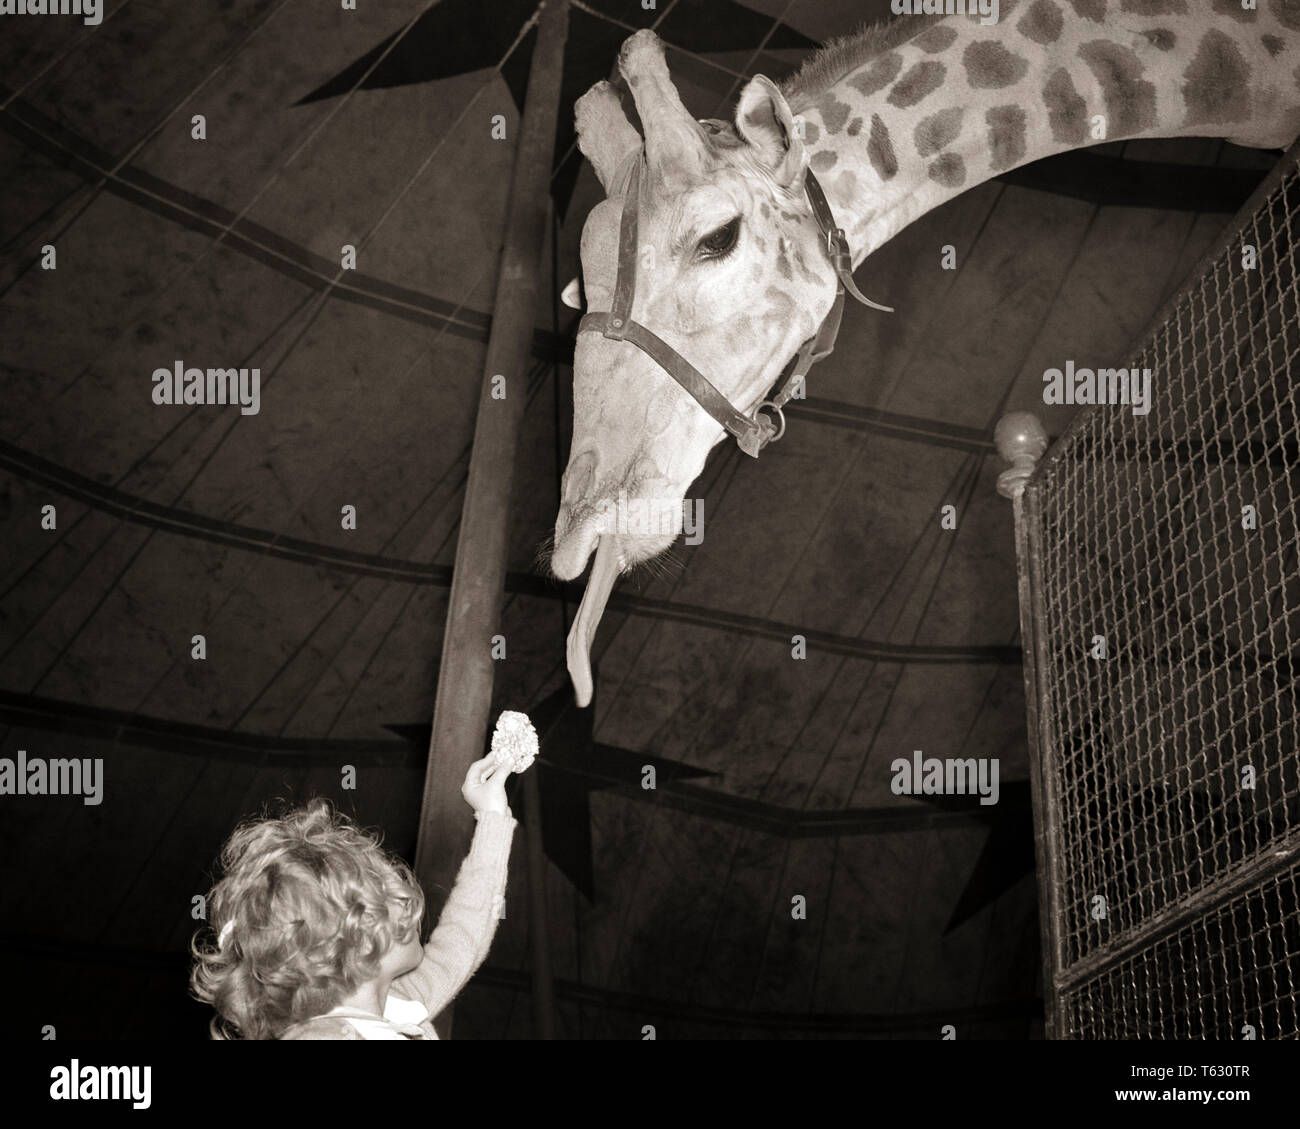 1950s ANONYMOUS GIRL AT THE ZOO OFFERING FOOD TO GIRAFFE TRYING TO  REACH IT WITH HIS TONGUE - z222 HAR001 HARS ZOO CONNECTION COMEDY ANONYMOUS JUVENILES OFFERING BIG AND LITTLE BLACK AND WHITE CAUCASIAN ETHNICITY HAR001 OLD FASHIONED SHORT AND TALL - Stock Image